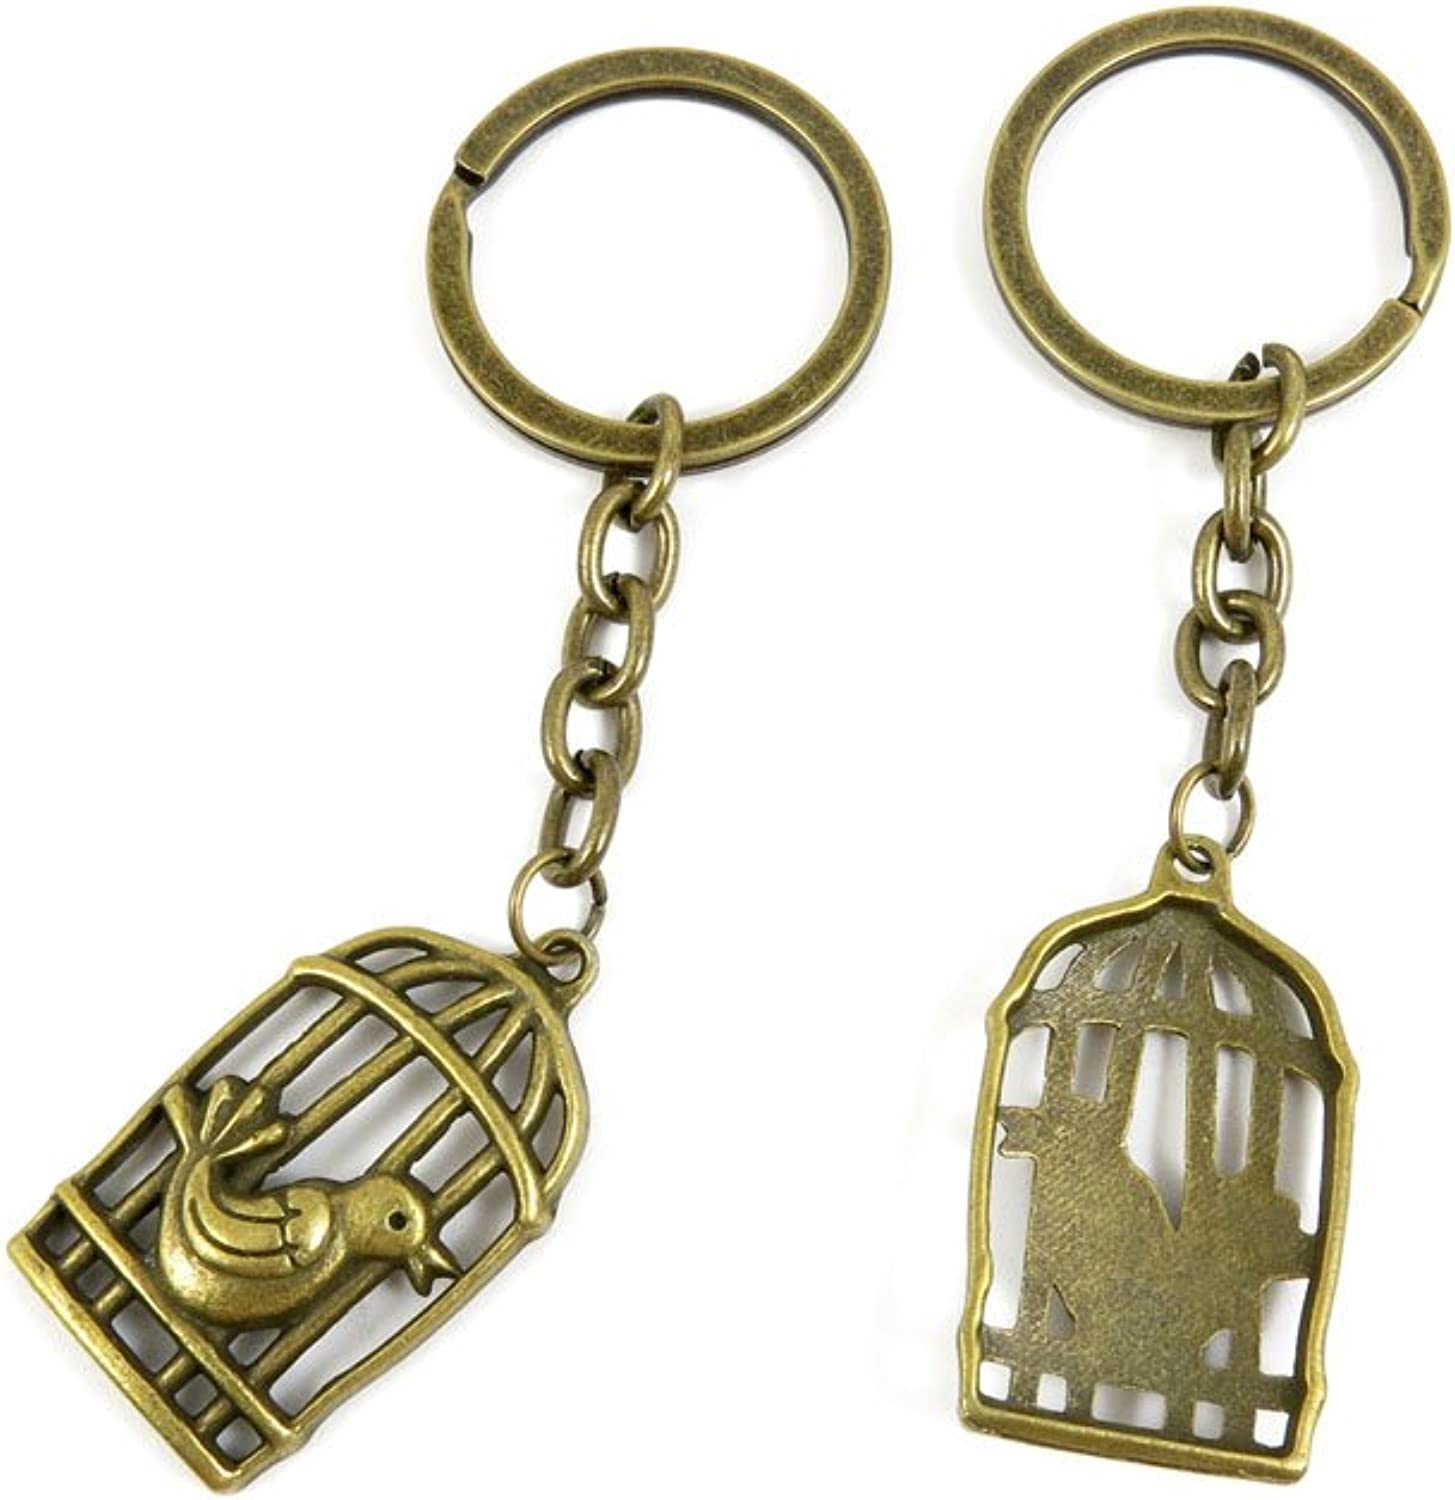 100 PCS Keyrings Keychains Key Ring Chains Tags Jewelry Findings Clasps Buckles Supplies A2MP6 Birdcage